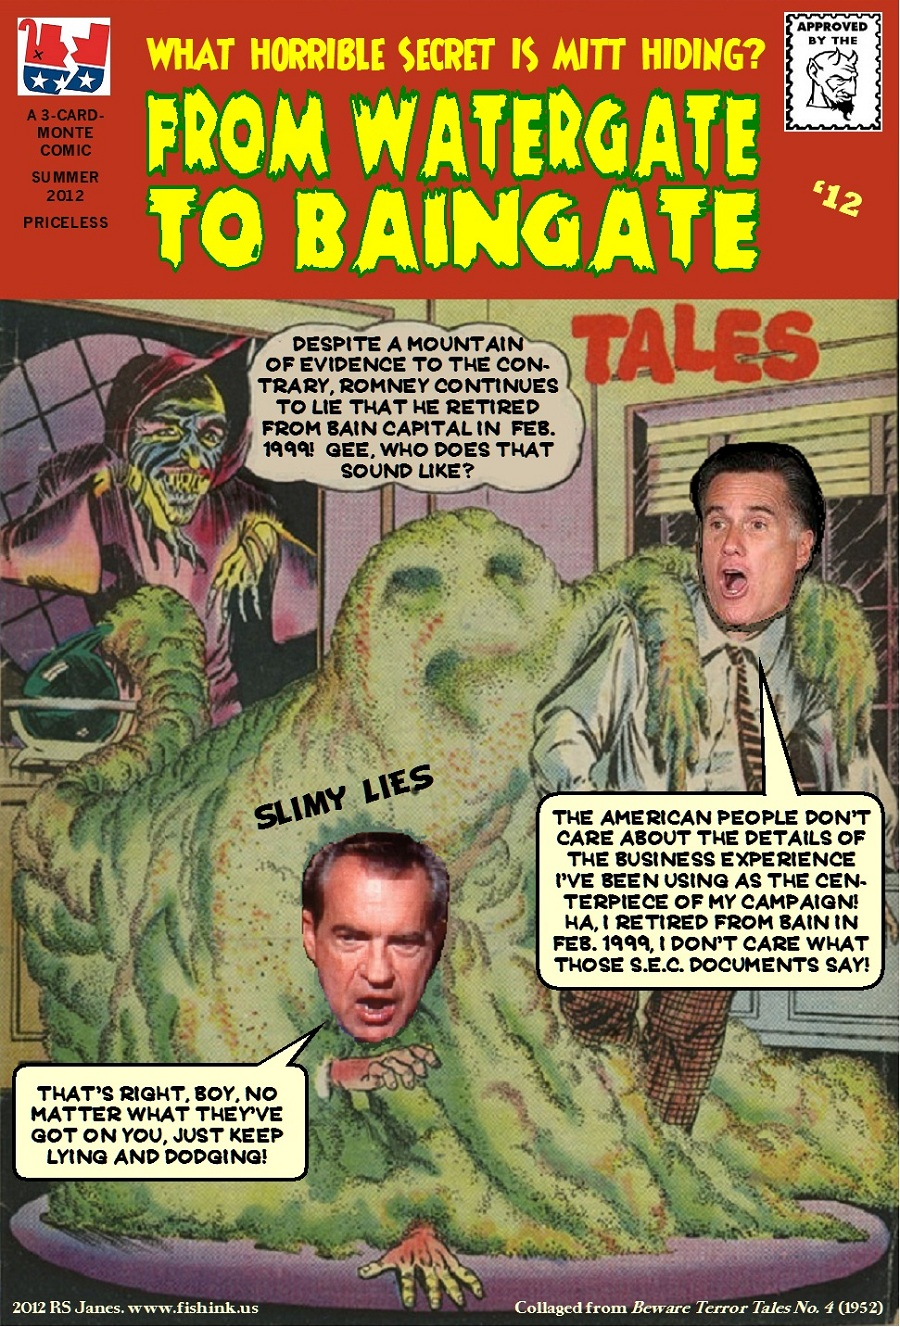 1acartoon-romney-watergate-baingate